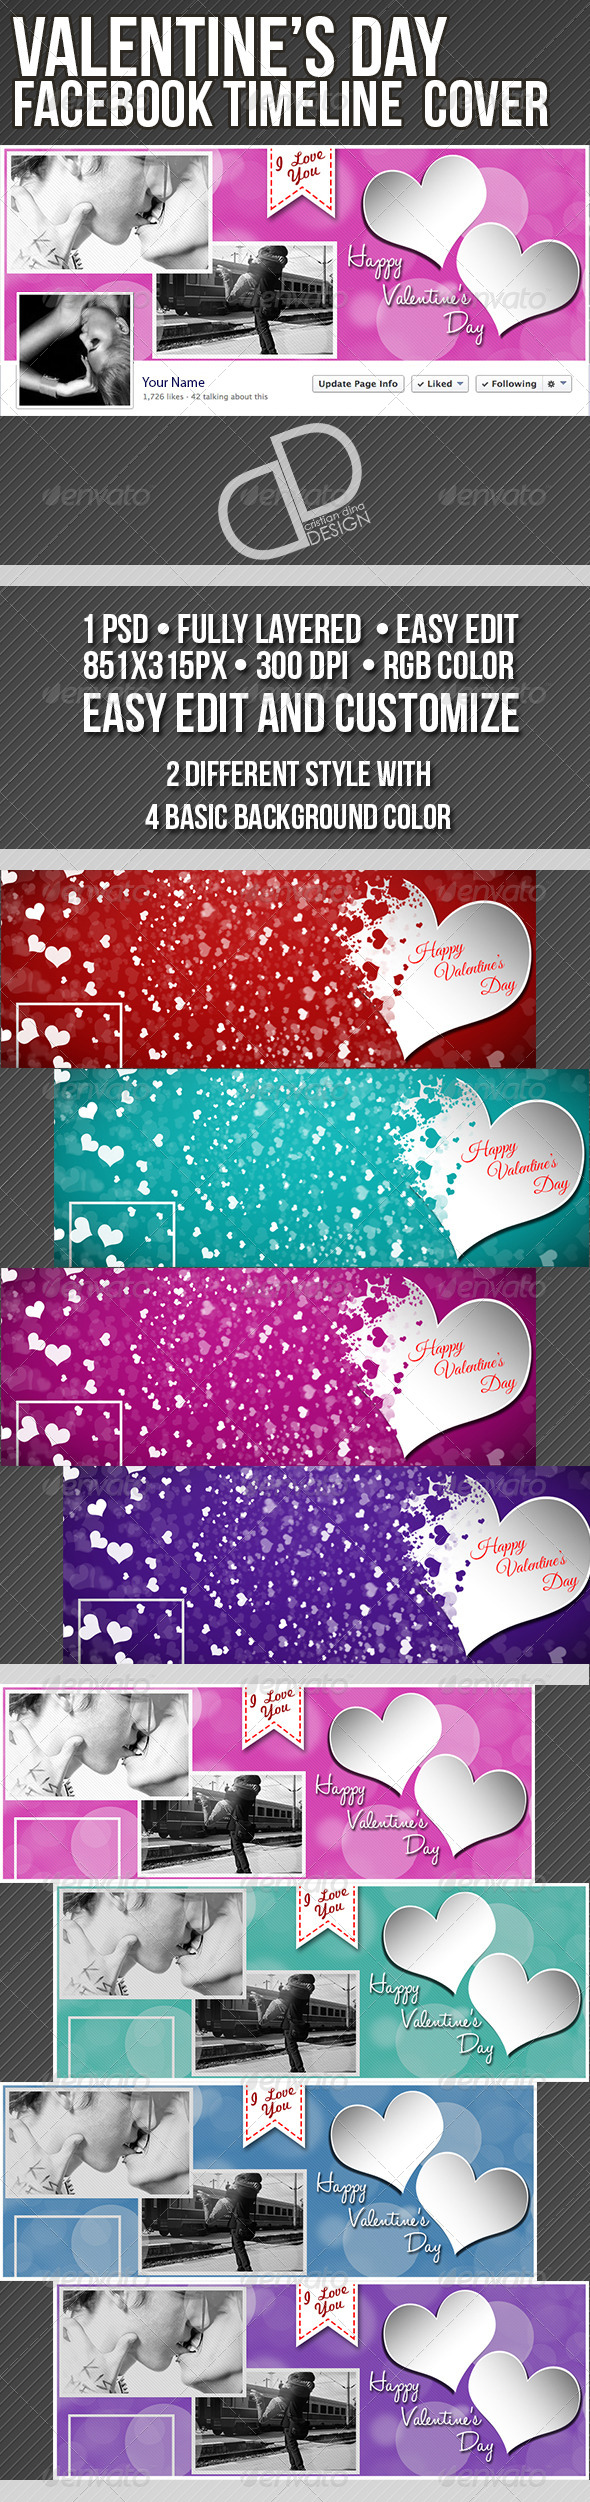 Valentine's Day Timeline Cover - Facebook Timeline Covers Social Media